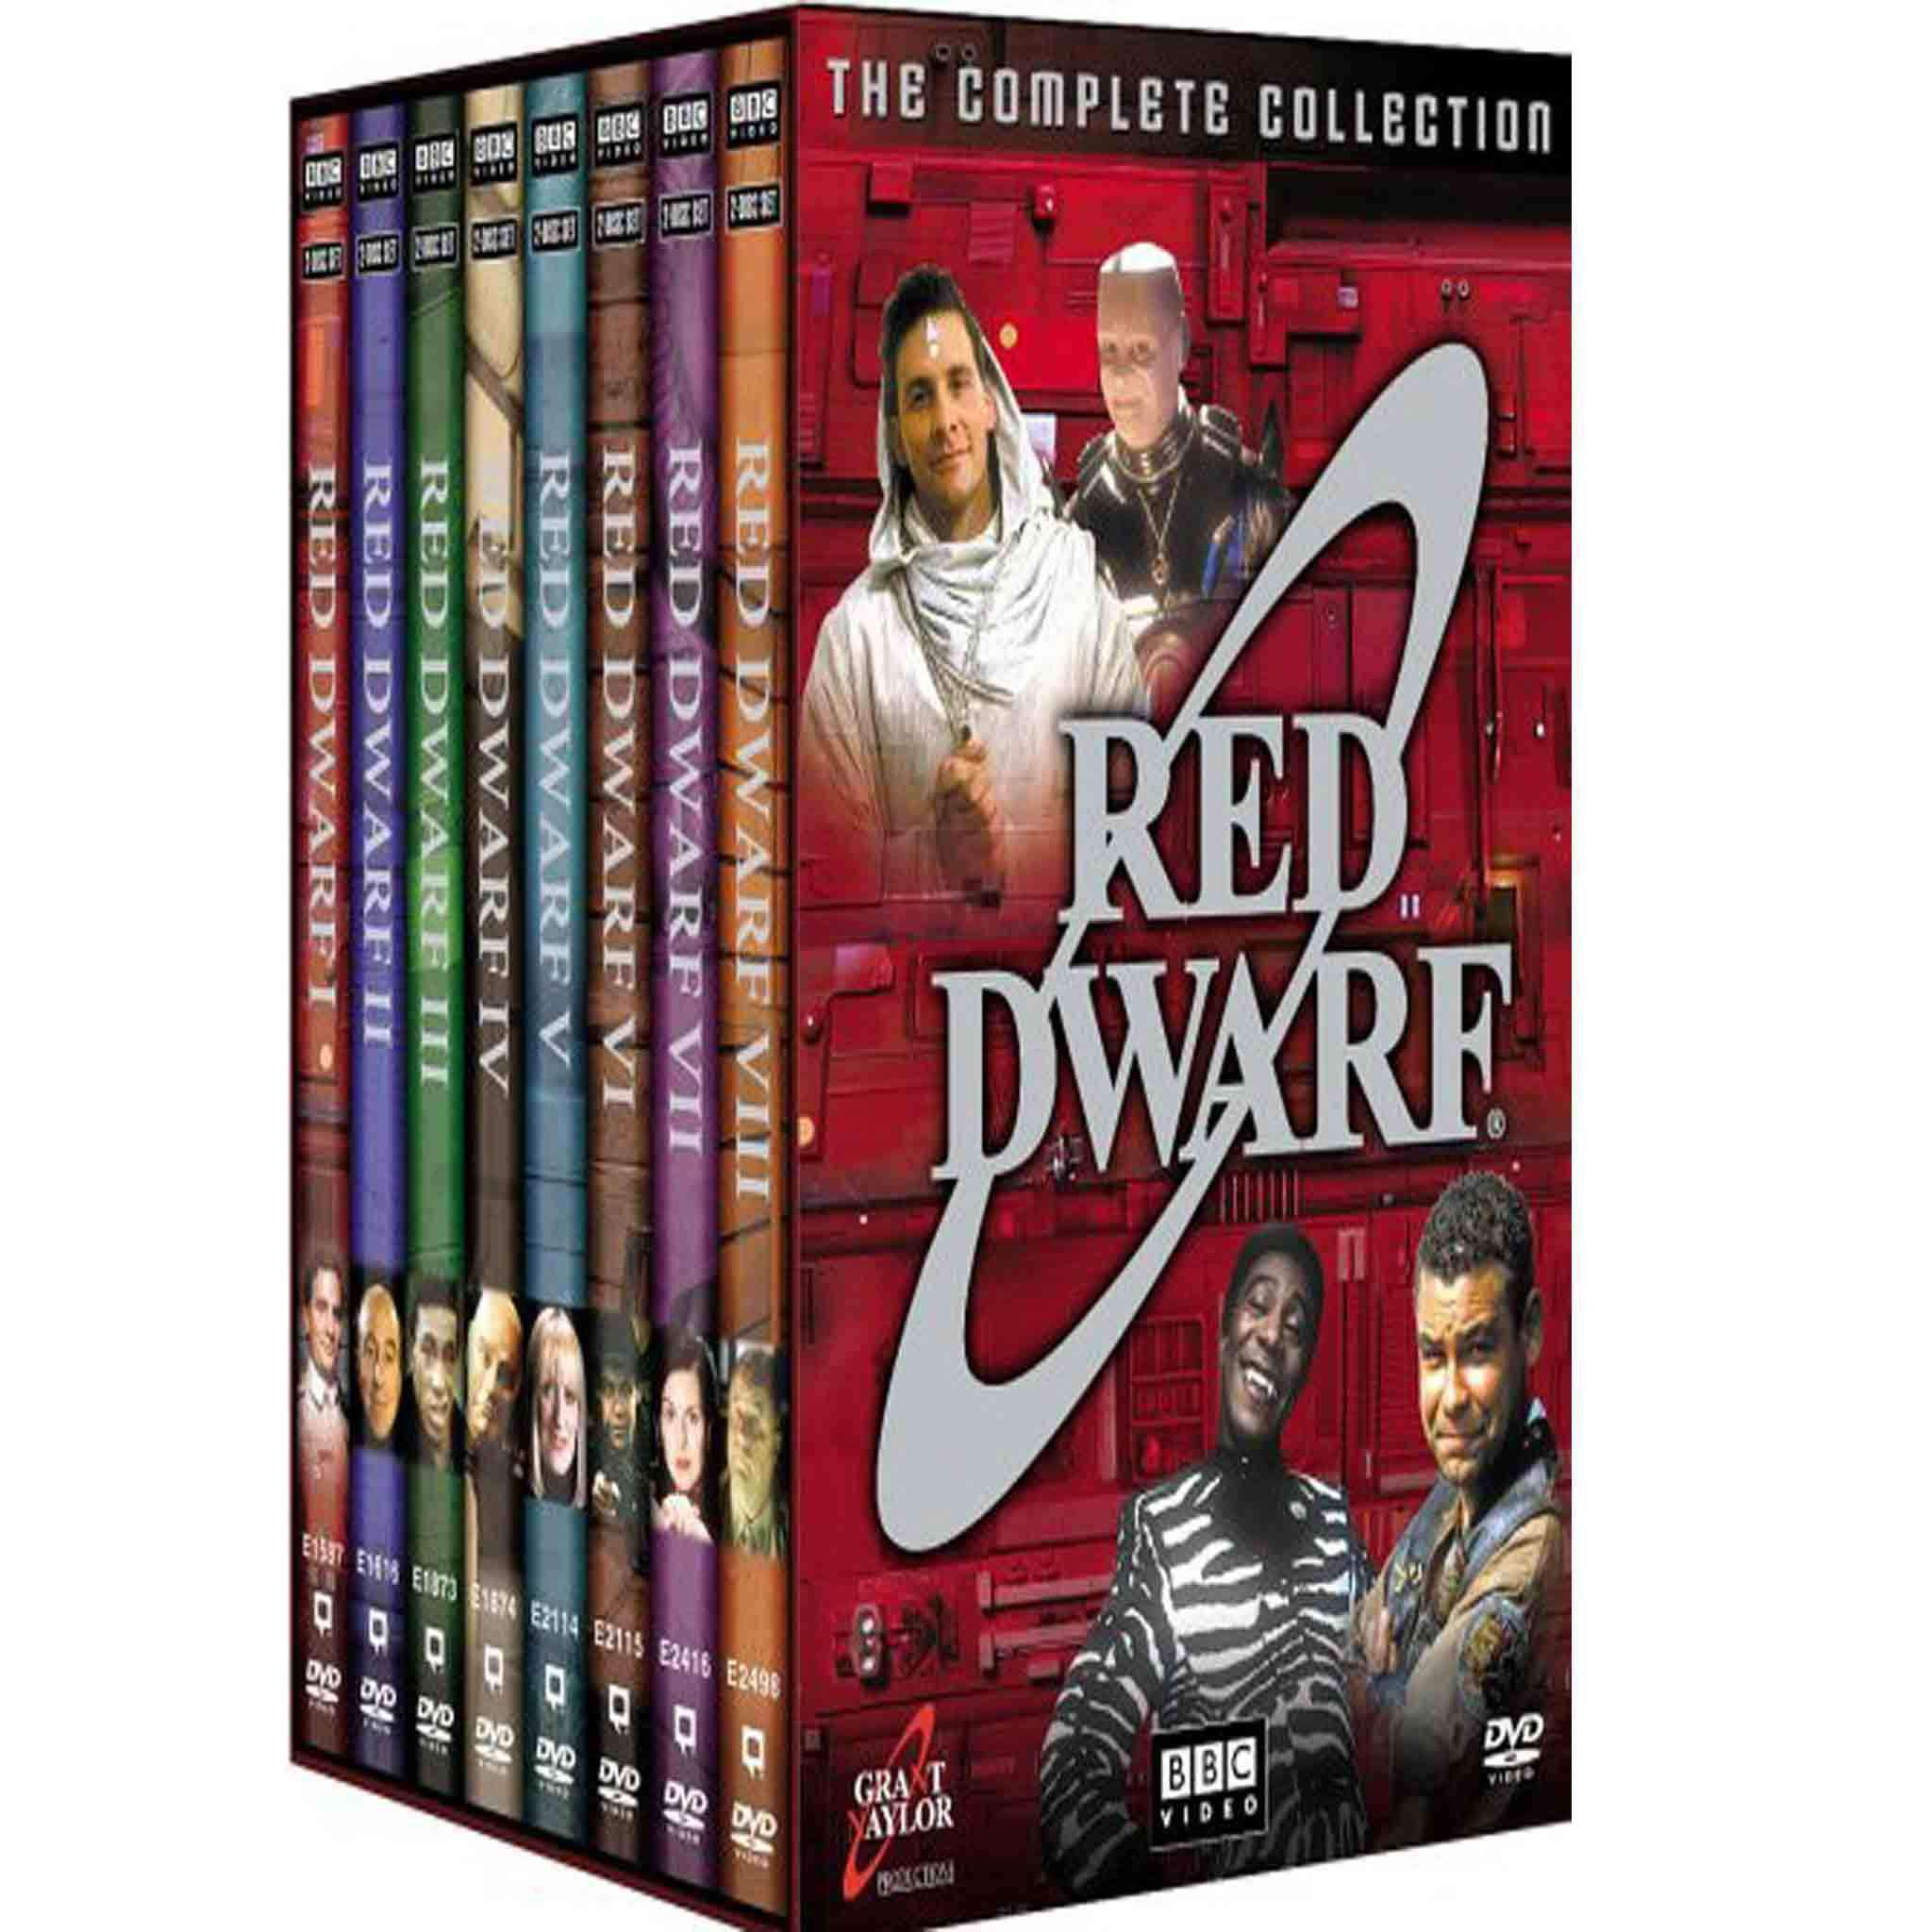 Red Dwarf: The Complete Collection (DVD) BBC America DVDs & Blu-ray Discs > DVDs > Box Sets